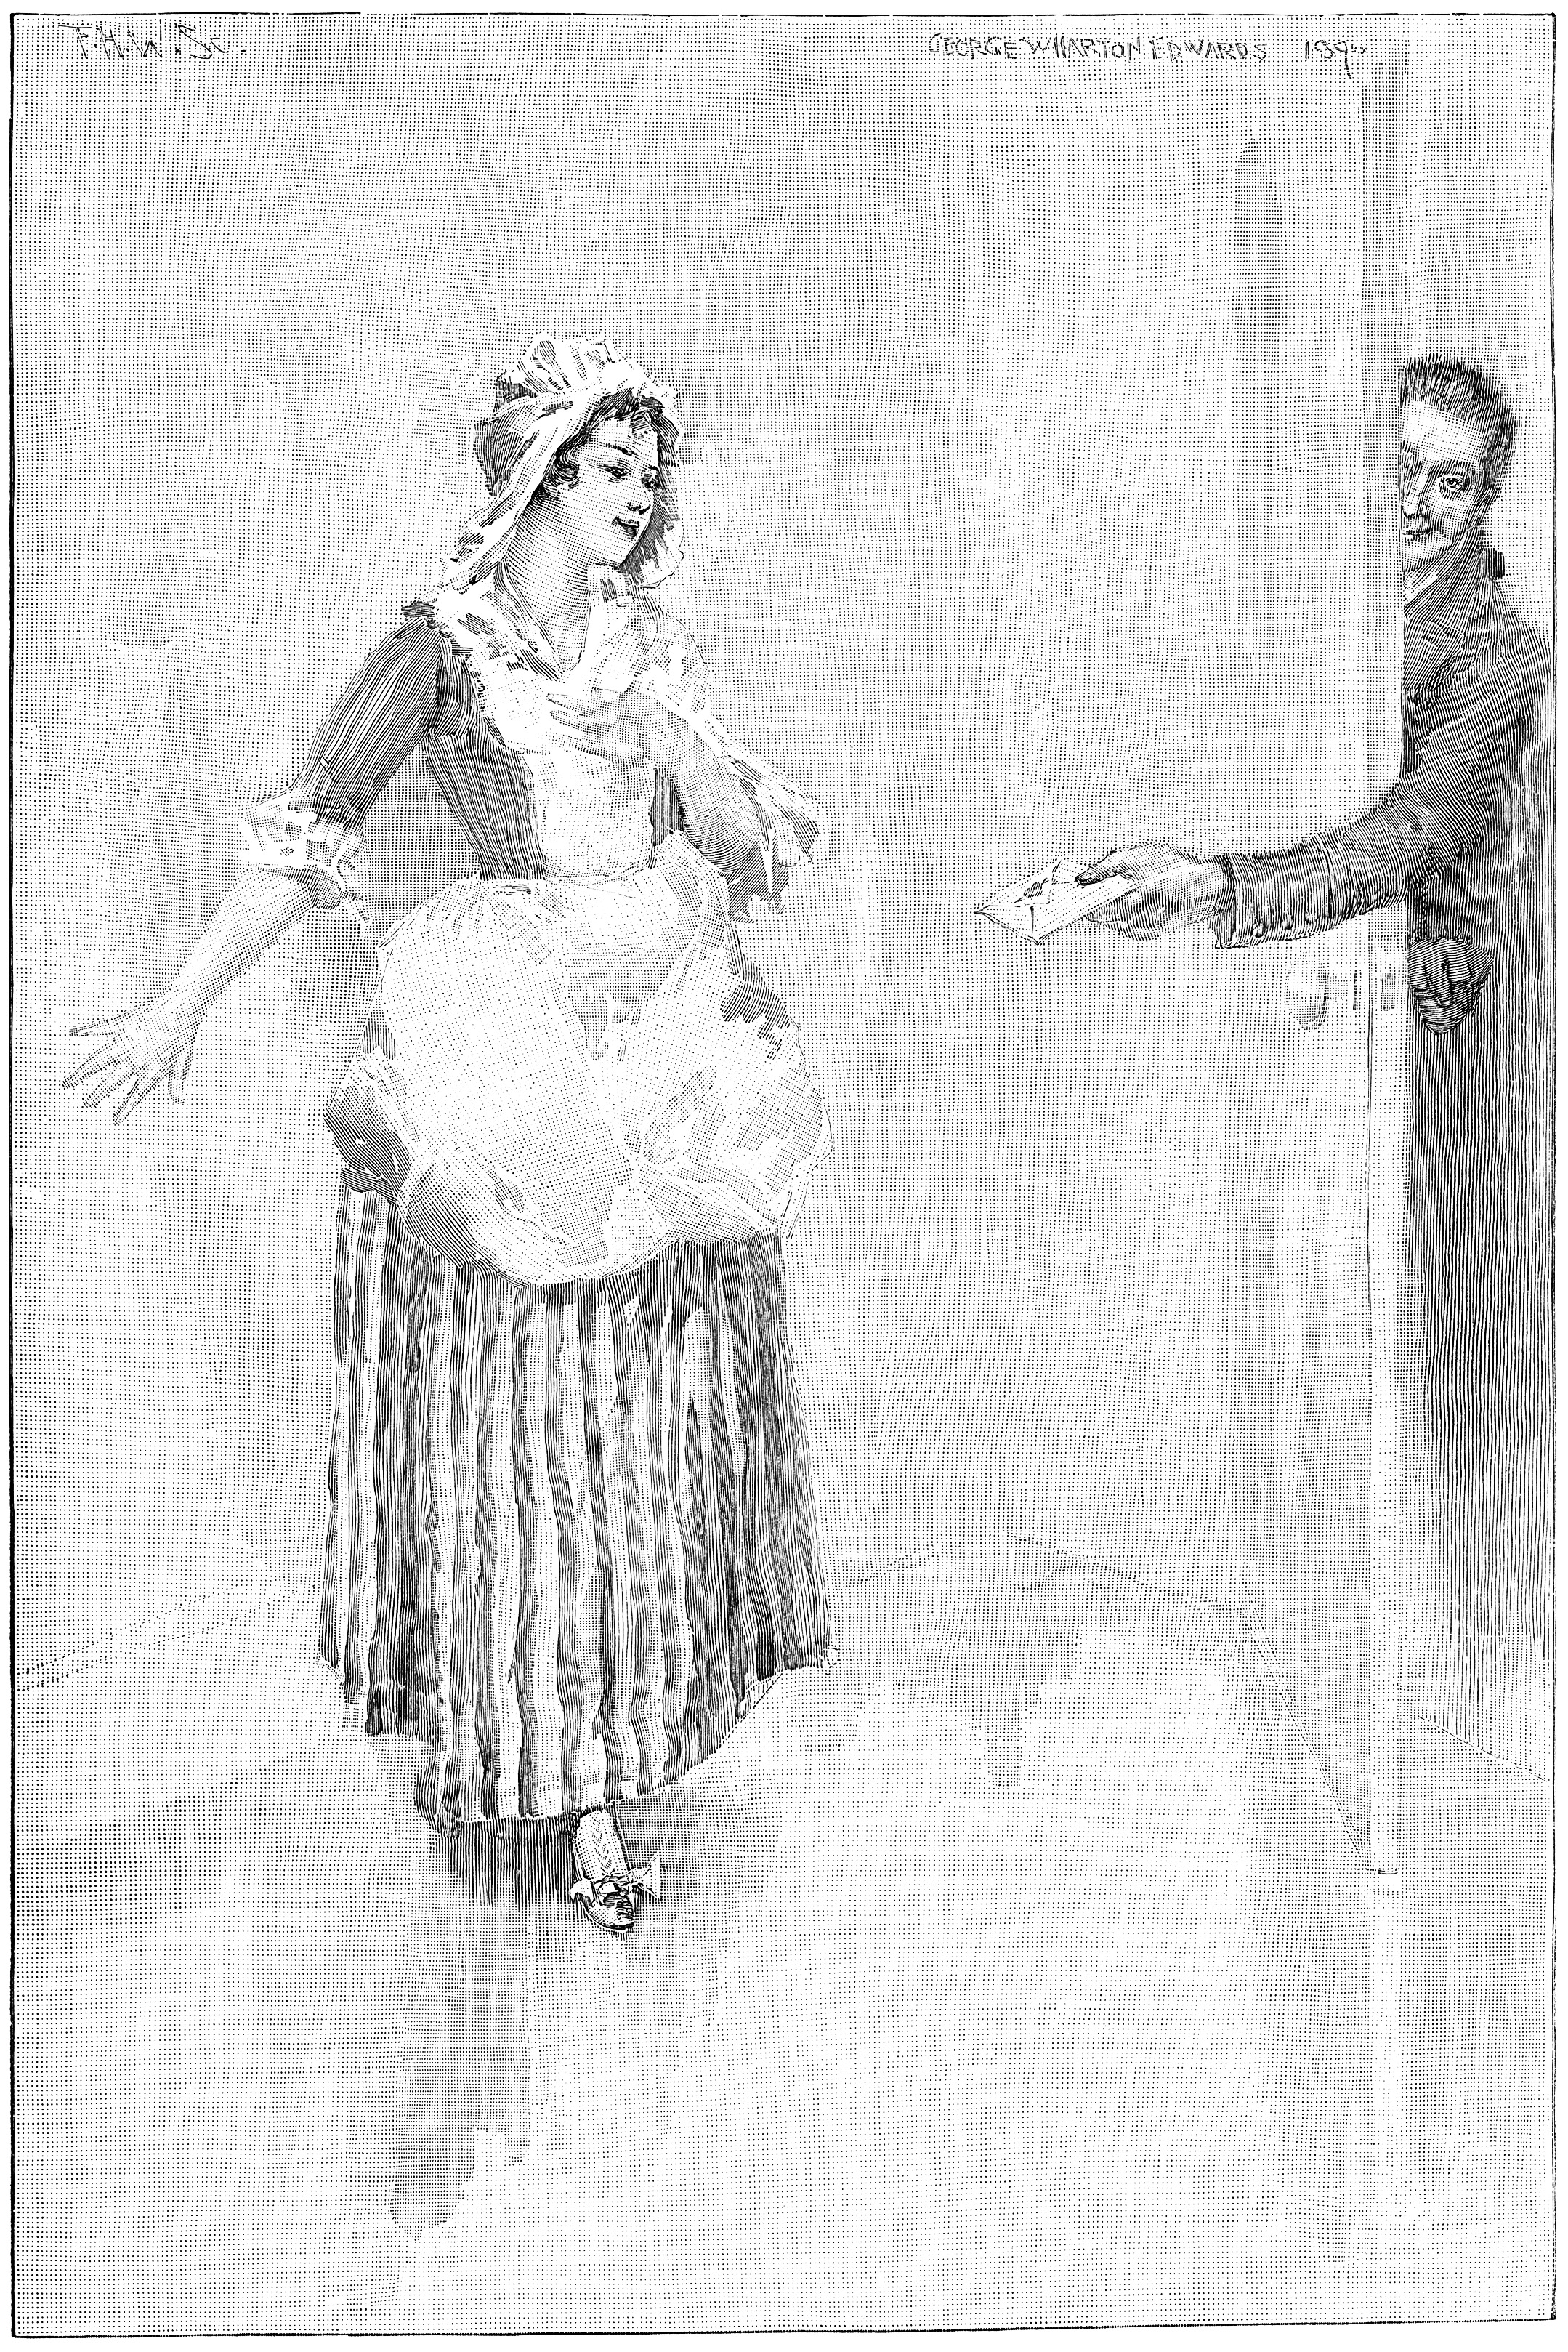 An engraving of a man passing a valentine in an envelope to a Victorian maiden through a crack in an open door accompanies the poem.